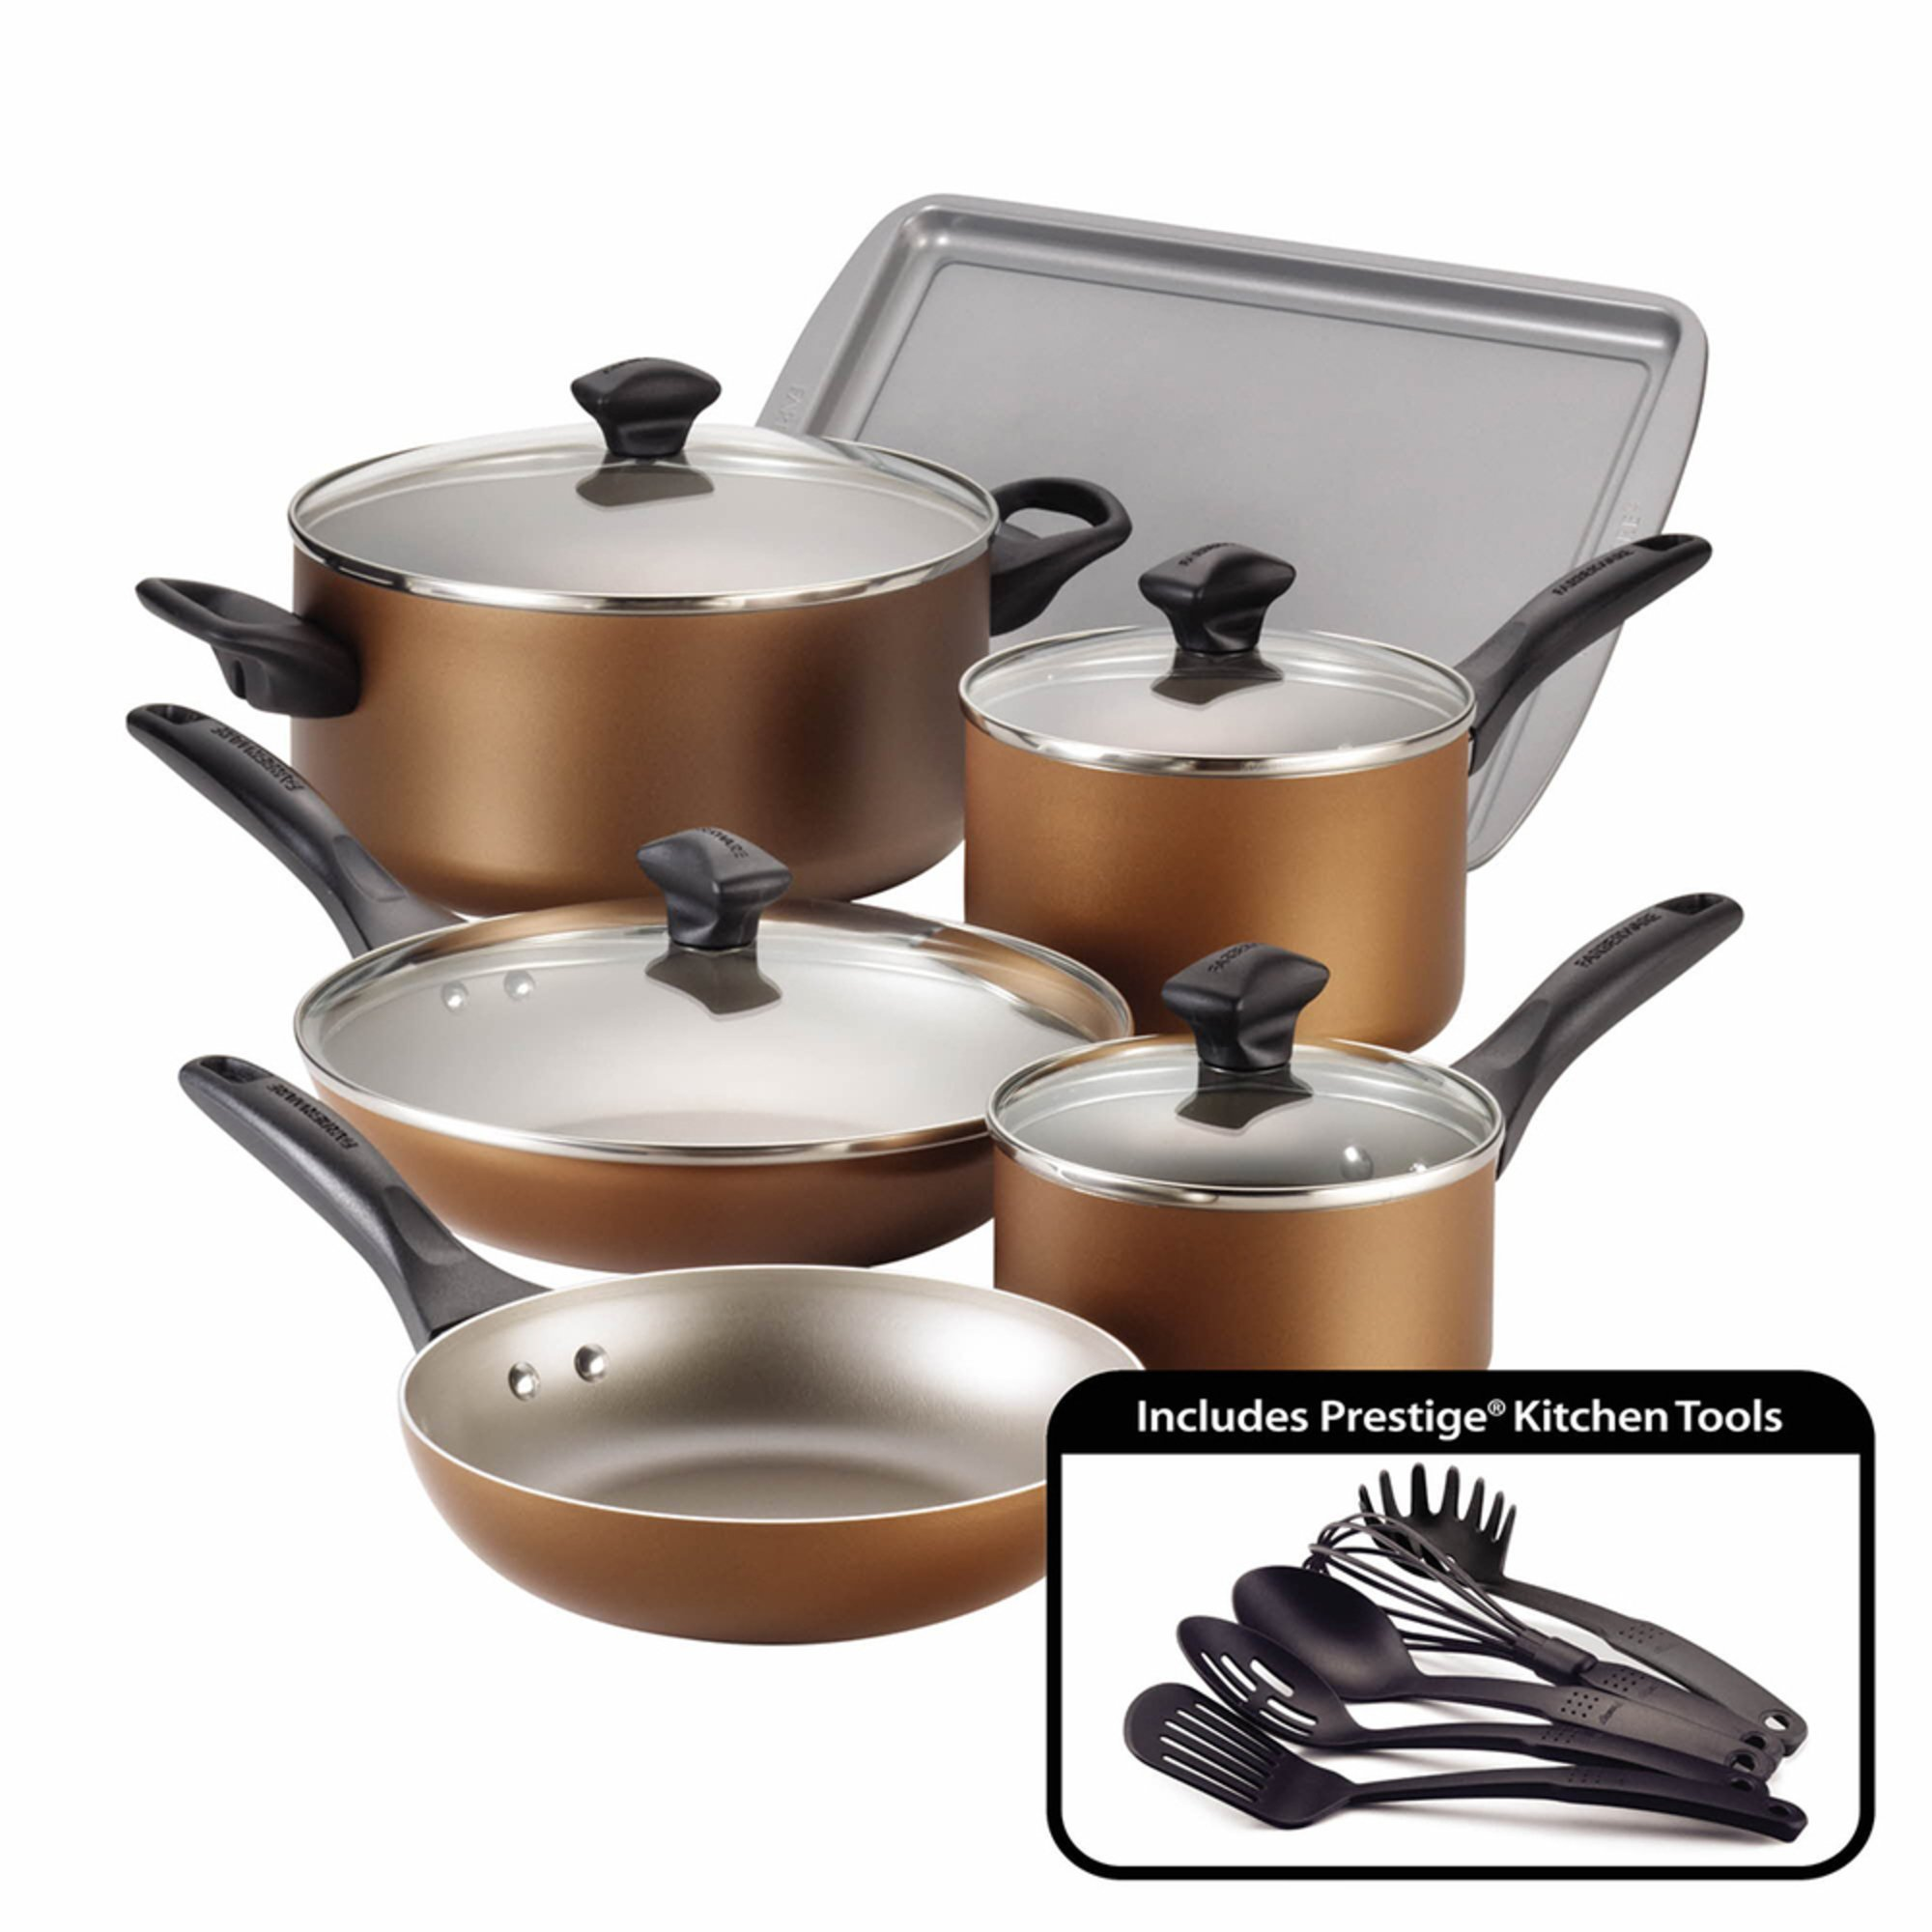 Farberware 15-piece Dishwasher Safe Non-stick Cookware Set ...